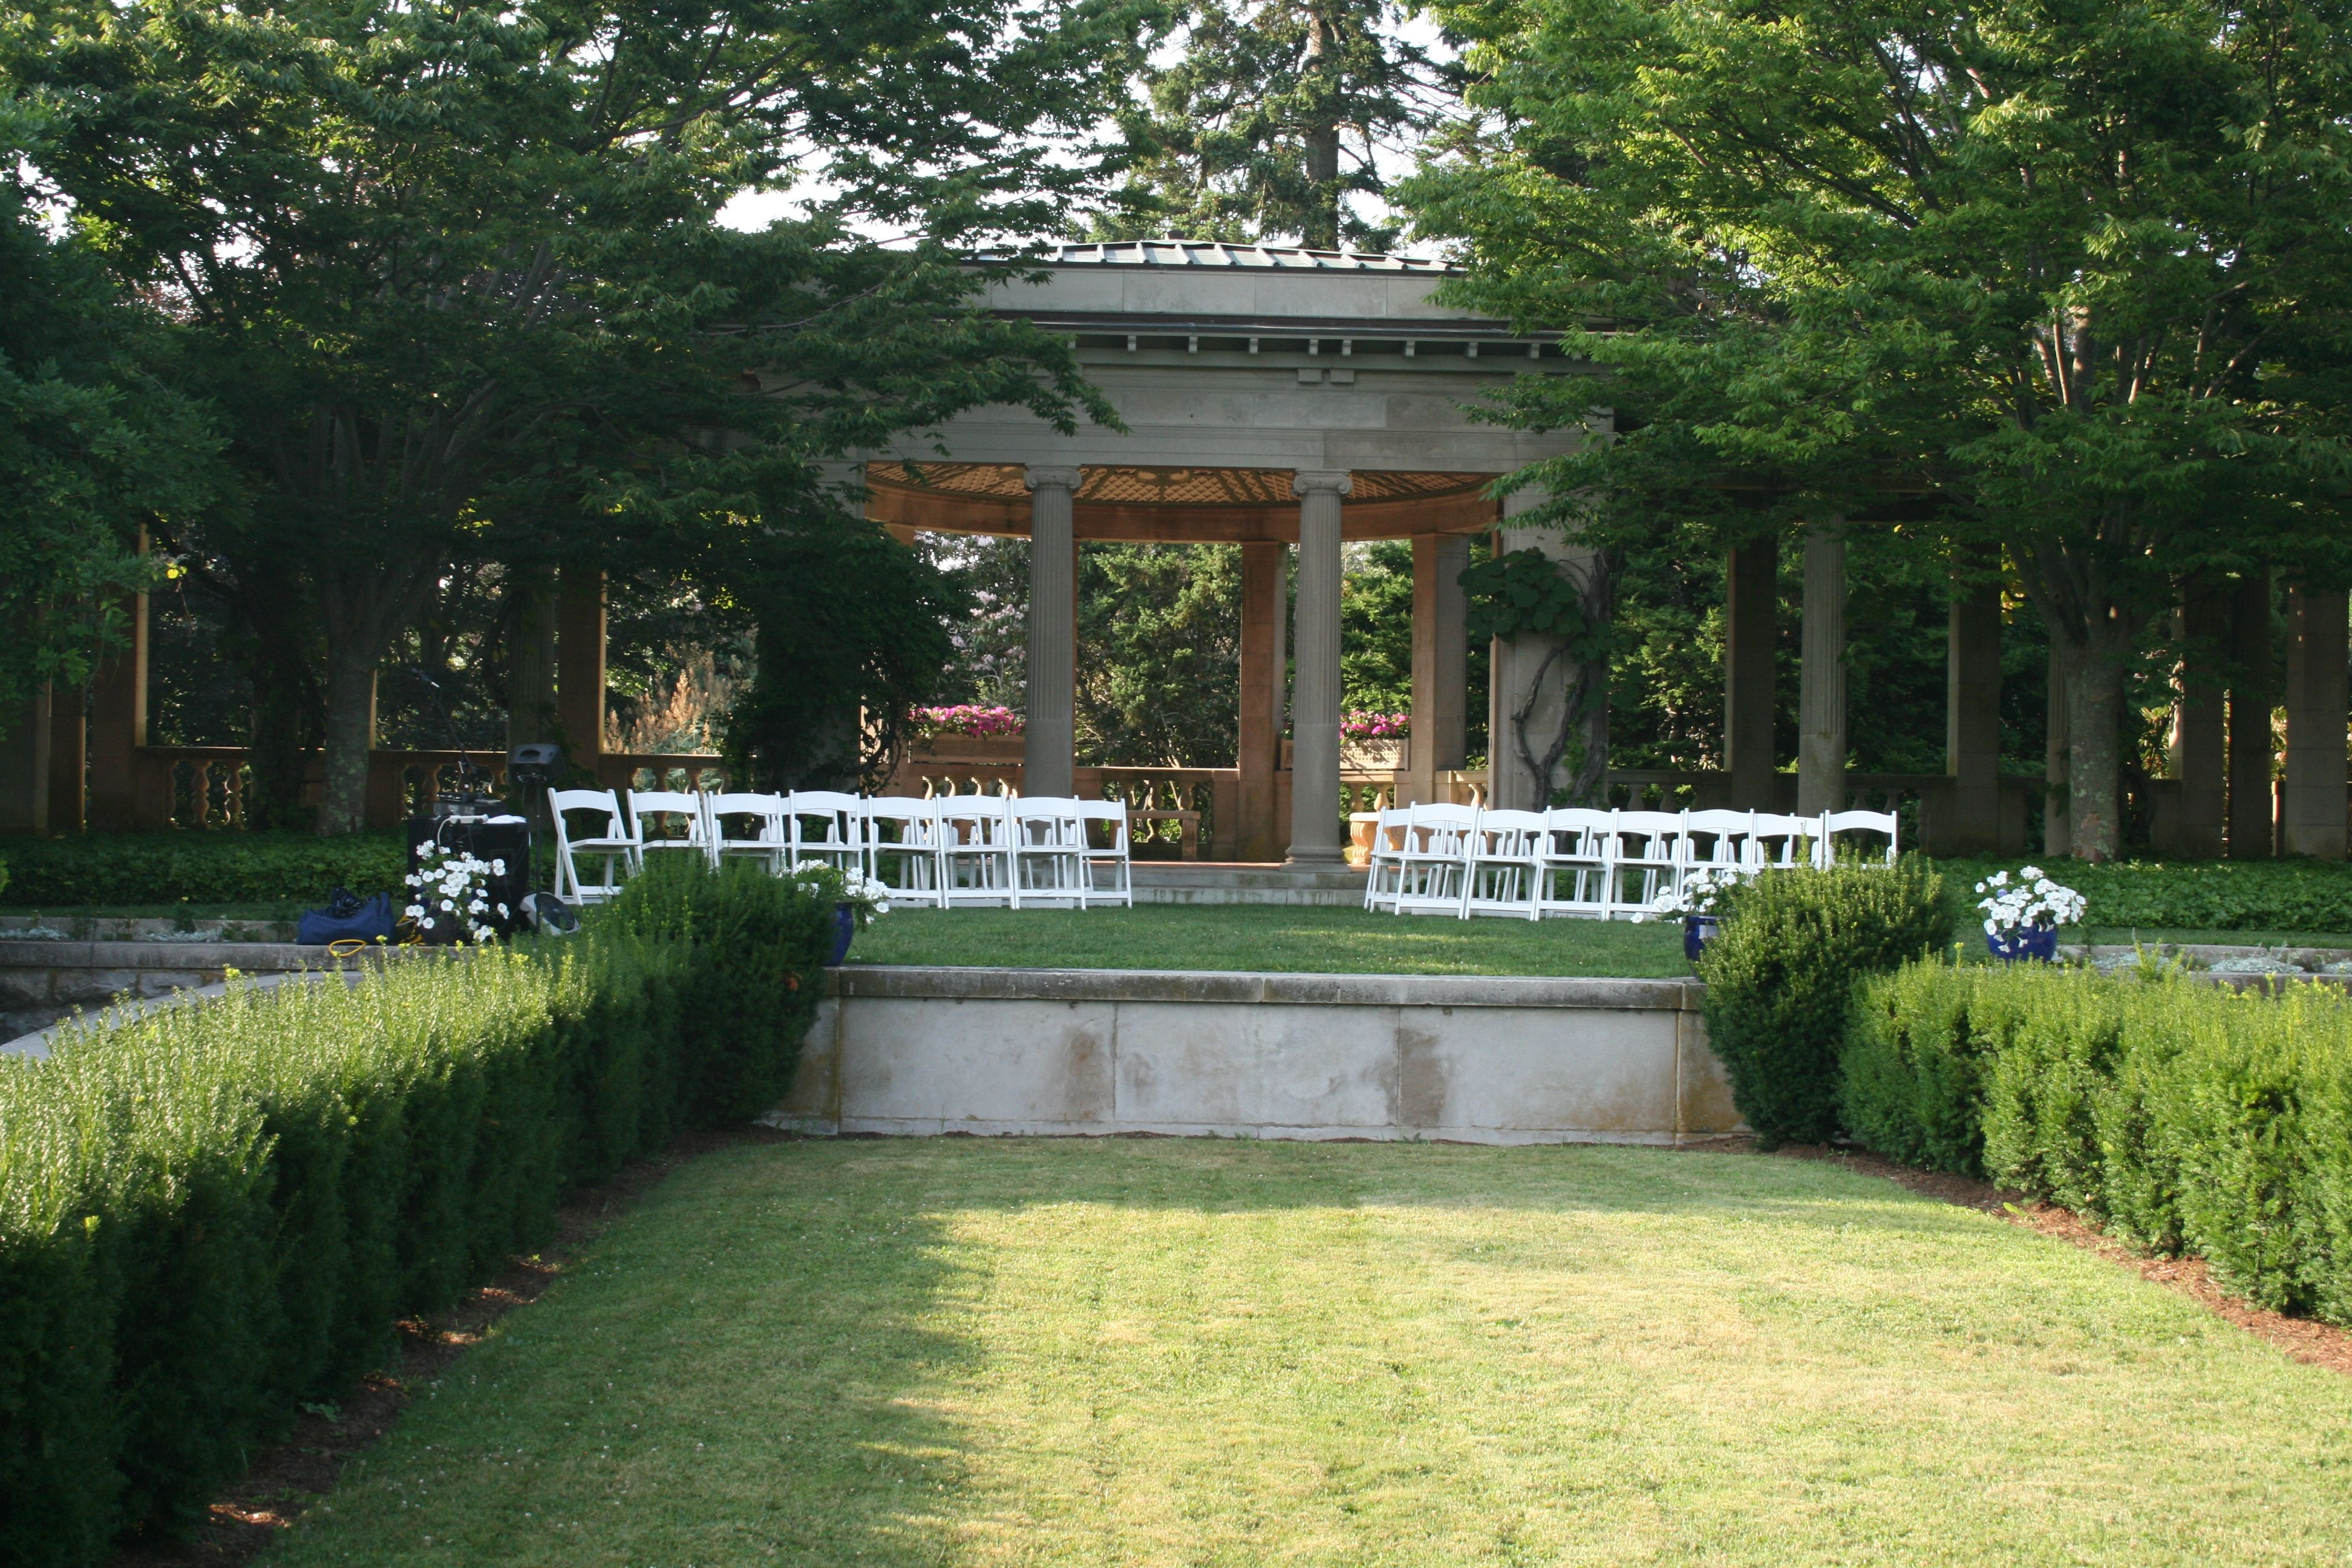 The Pergola At Harkness Park Is Perfect For A Garden Wedding There Is Room For More Than 100 Guests And Your Wed Ceremony Location Park Weddings State Parks